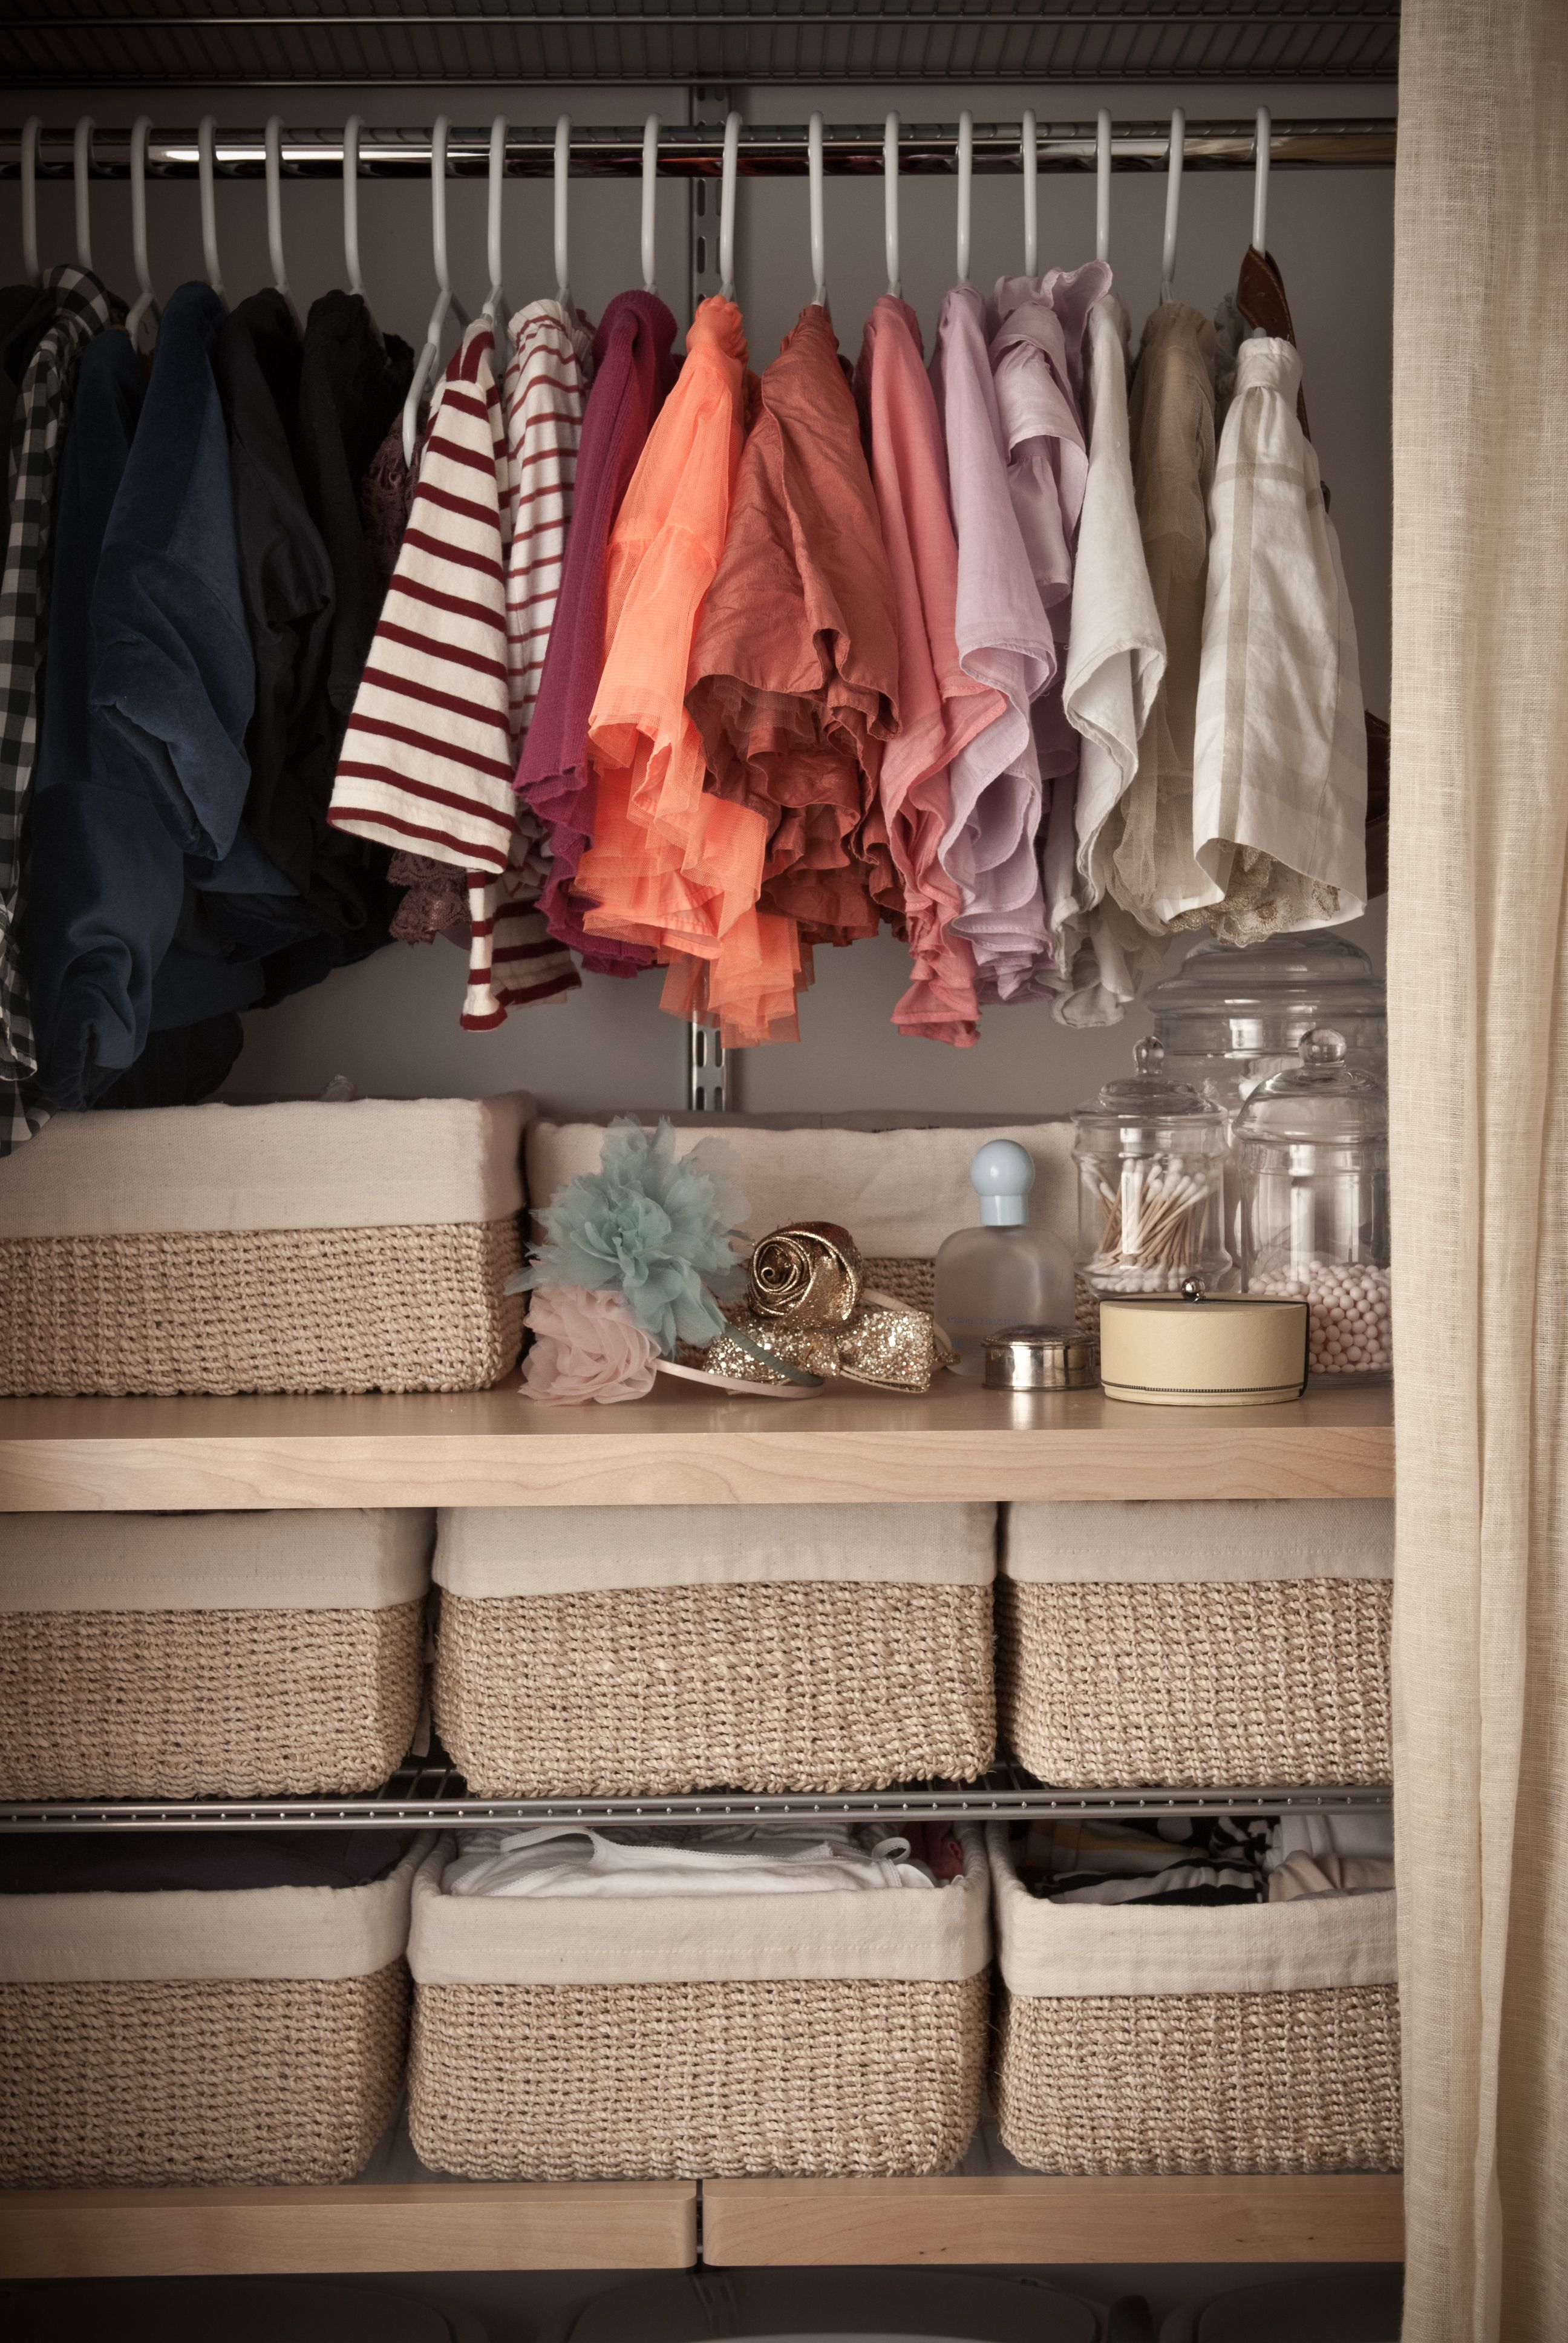 How To Make The Most Of Your Small Closet Space